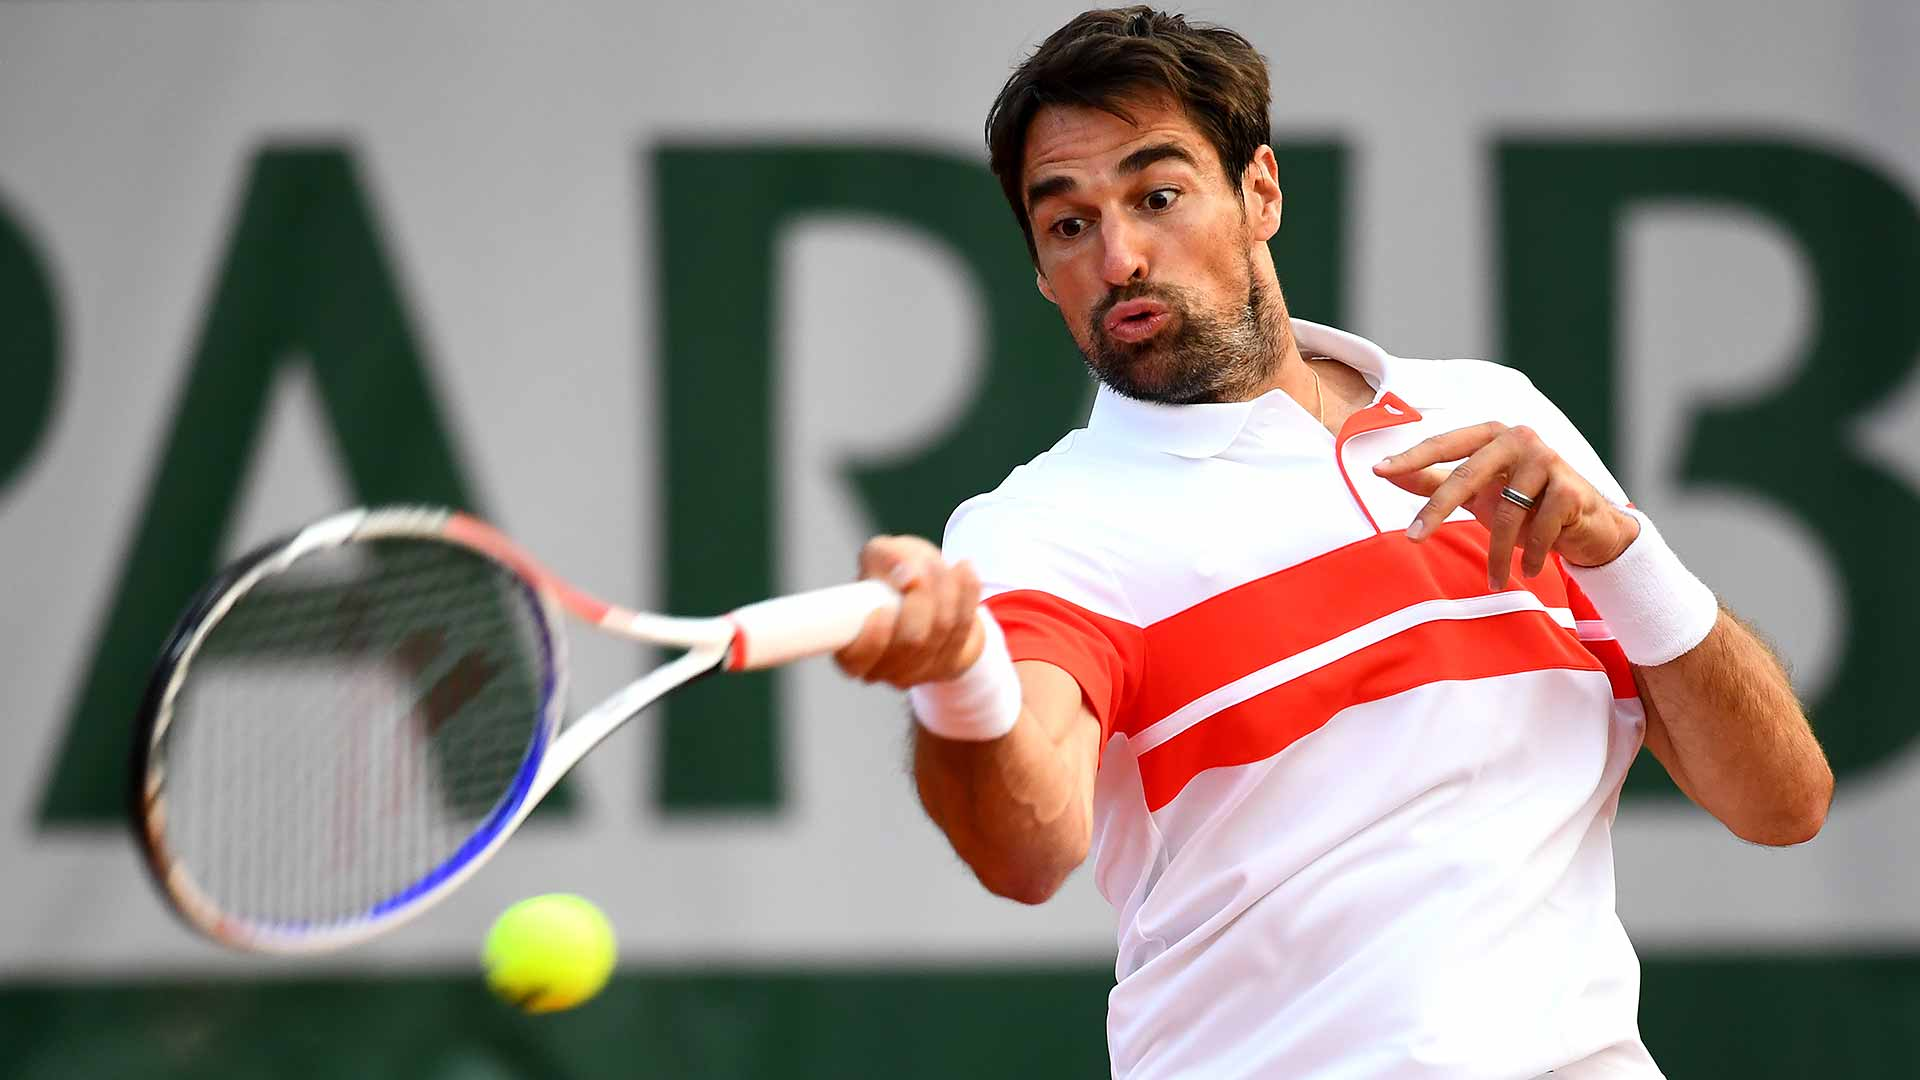 Jeremy Chardy and Fabrice Martin will play in the Roland Garros doubles semi-finals.